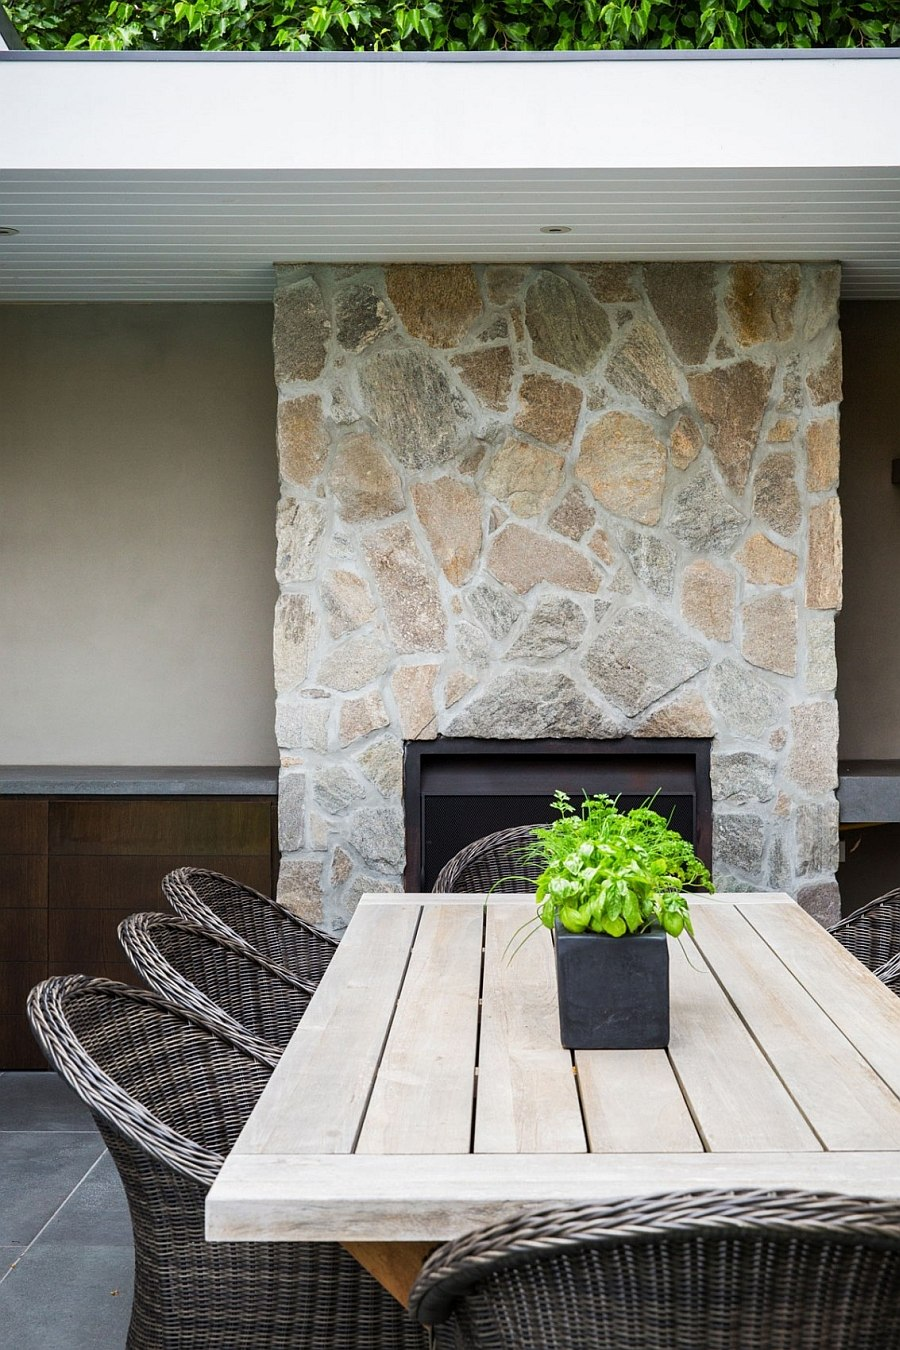 Stone fireplace acts as the perfect backdrop for the alfresco dining